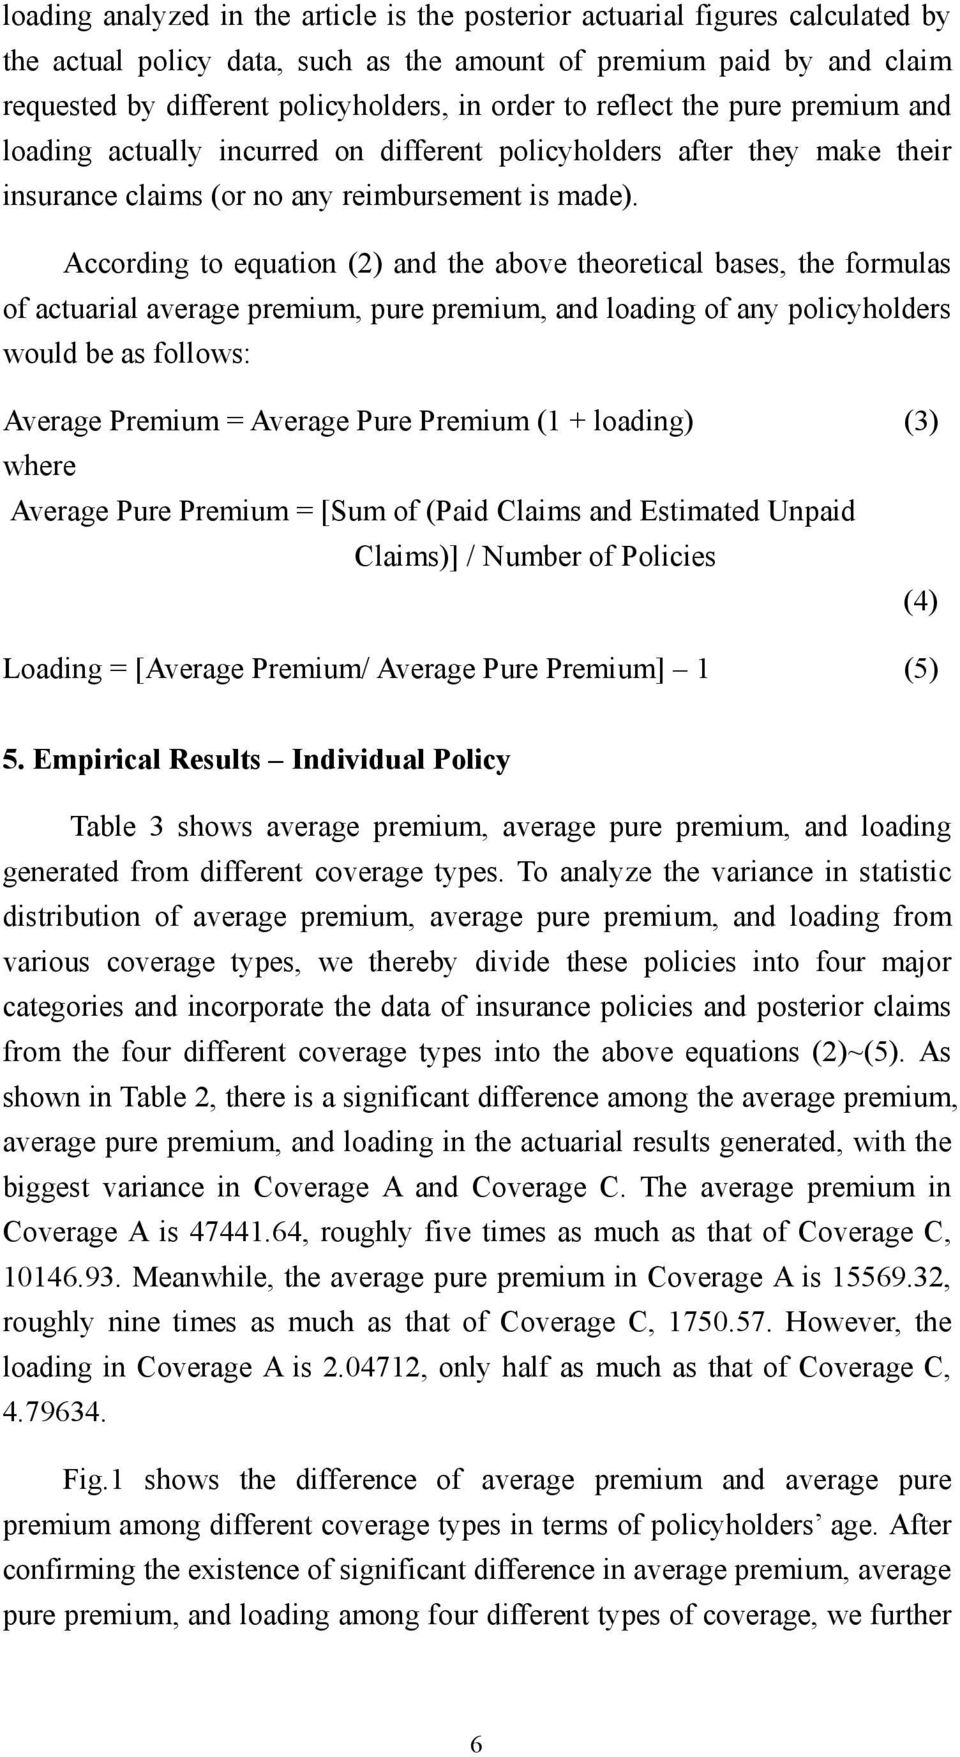 According to equation (2) and the above theoretical bases, the formulas of actuarial average premium, pure premium, and loading of any policyholders would be as follows: Average Premium = Average